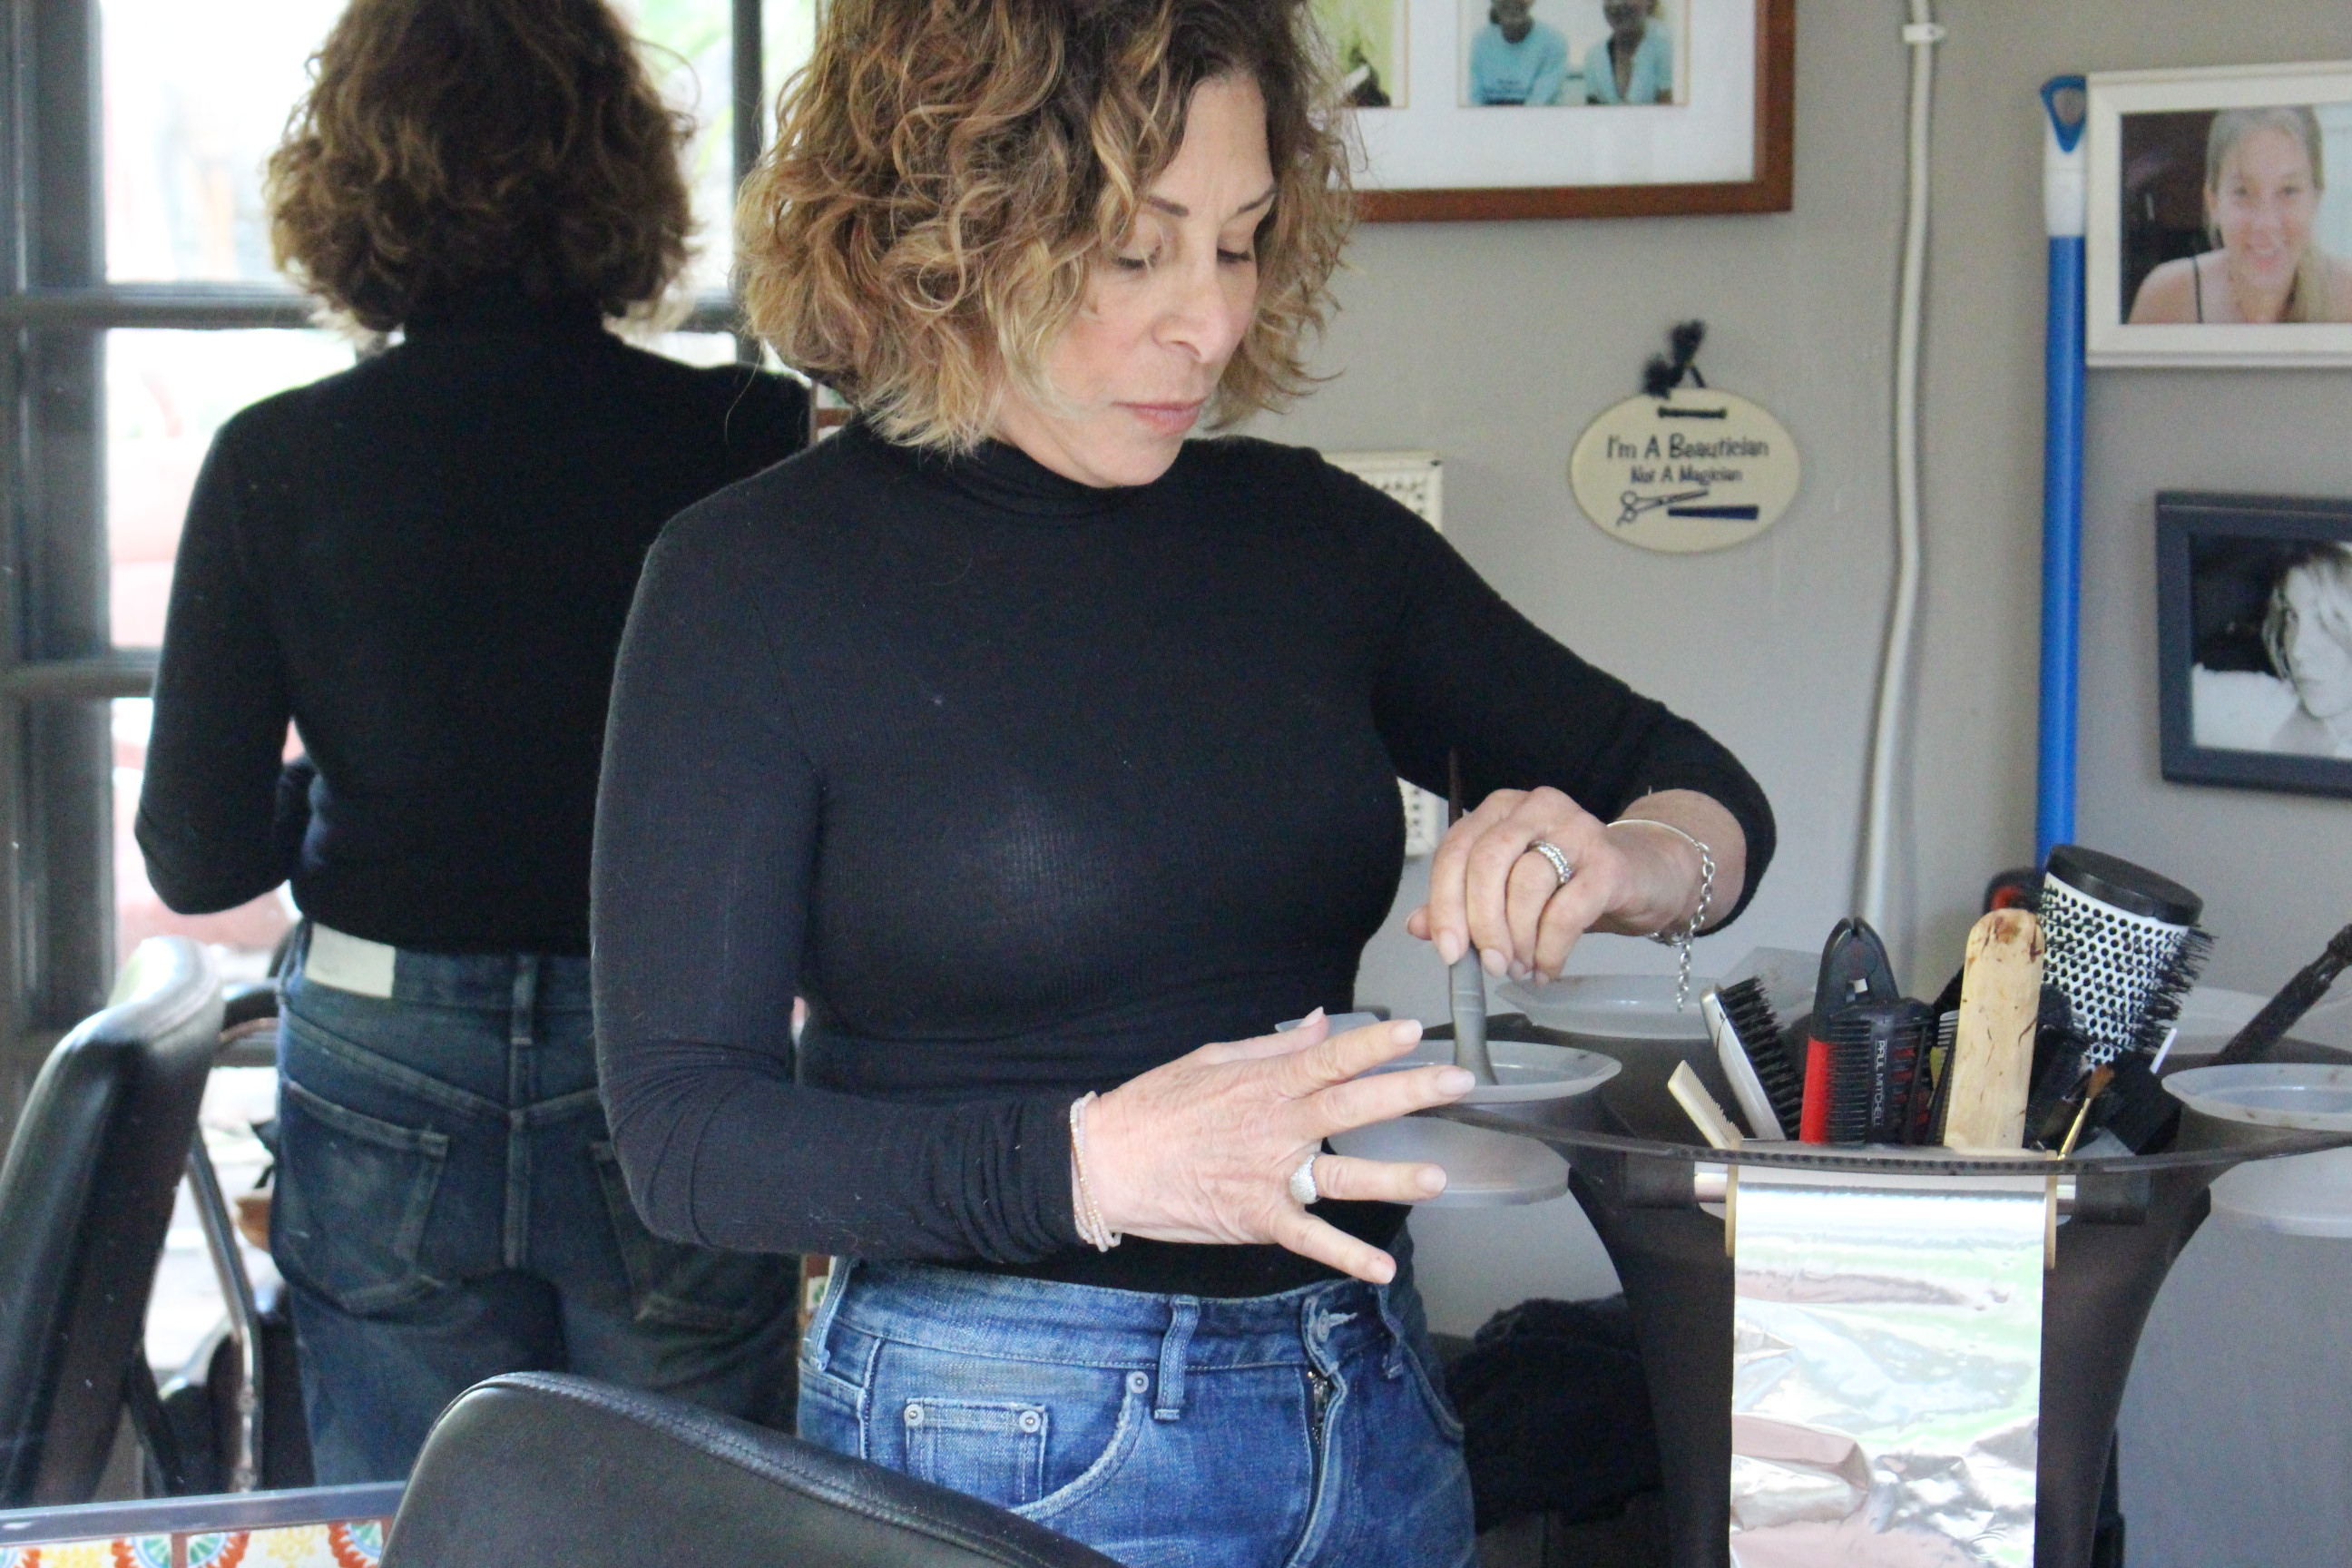 Dana Gache, hairstylist, mixing color at her studio